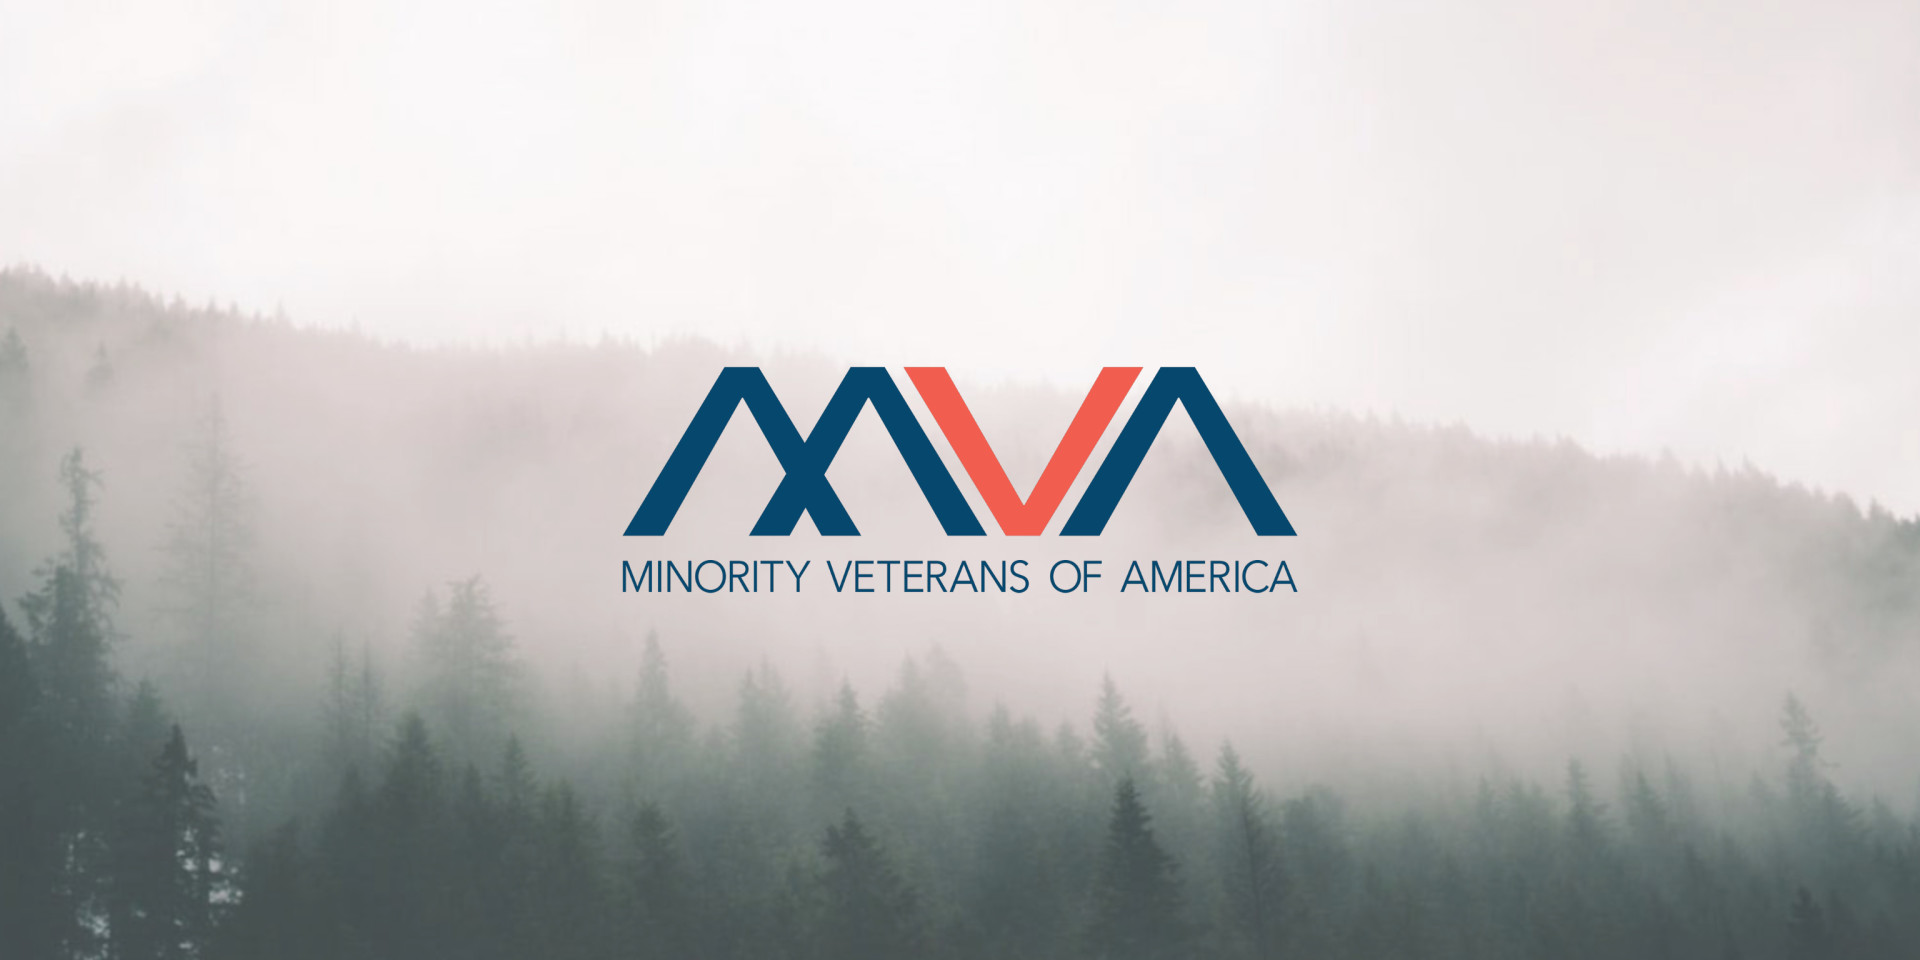 Minority Veterans of America